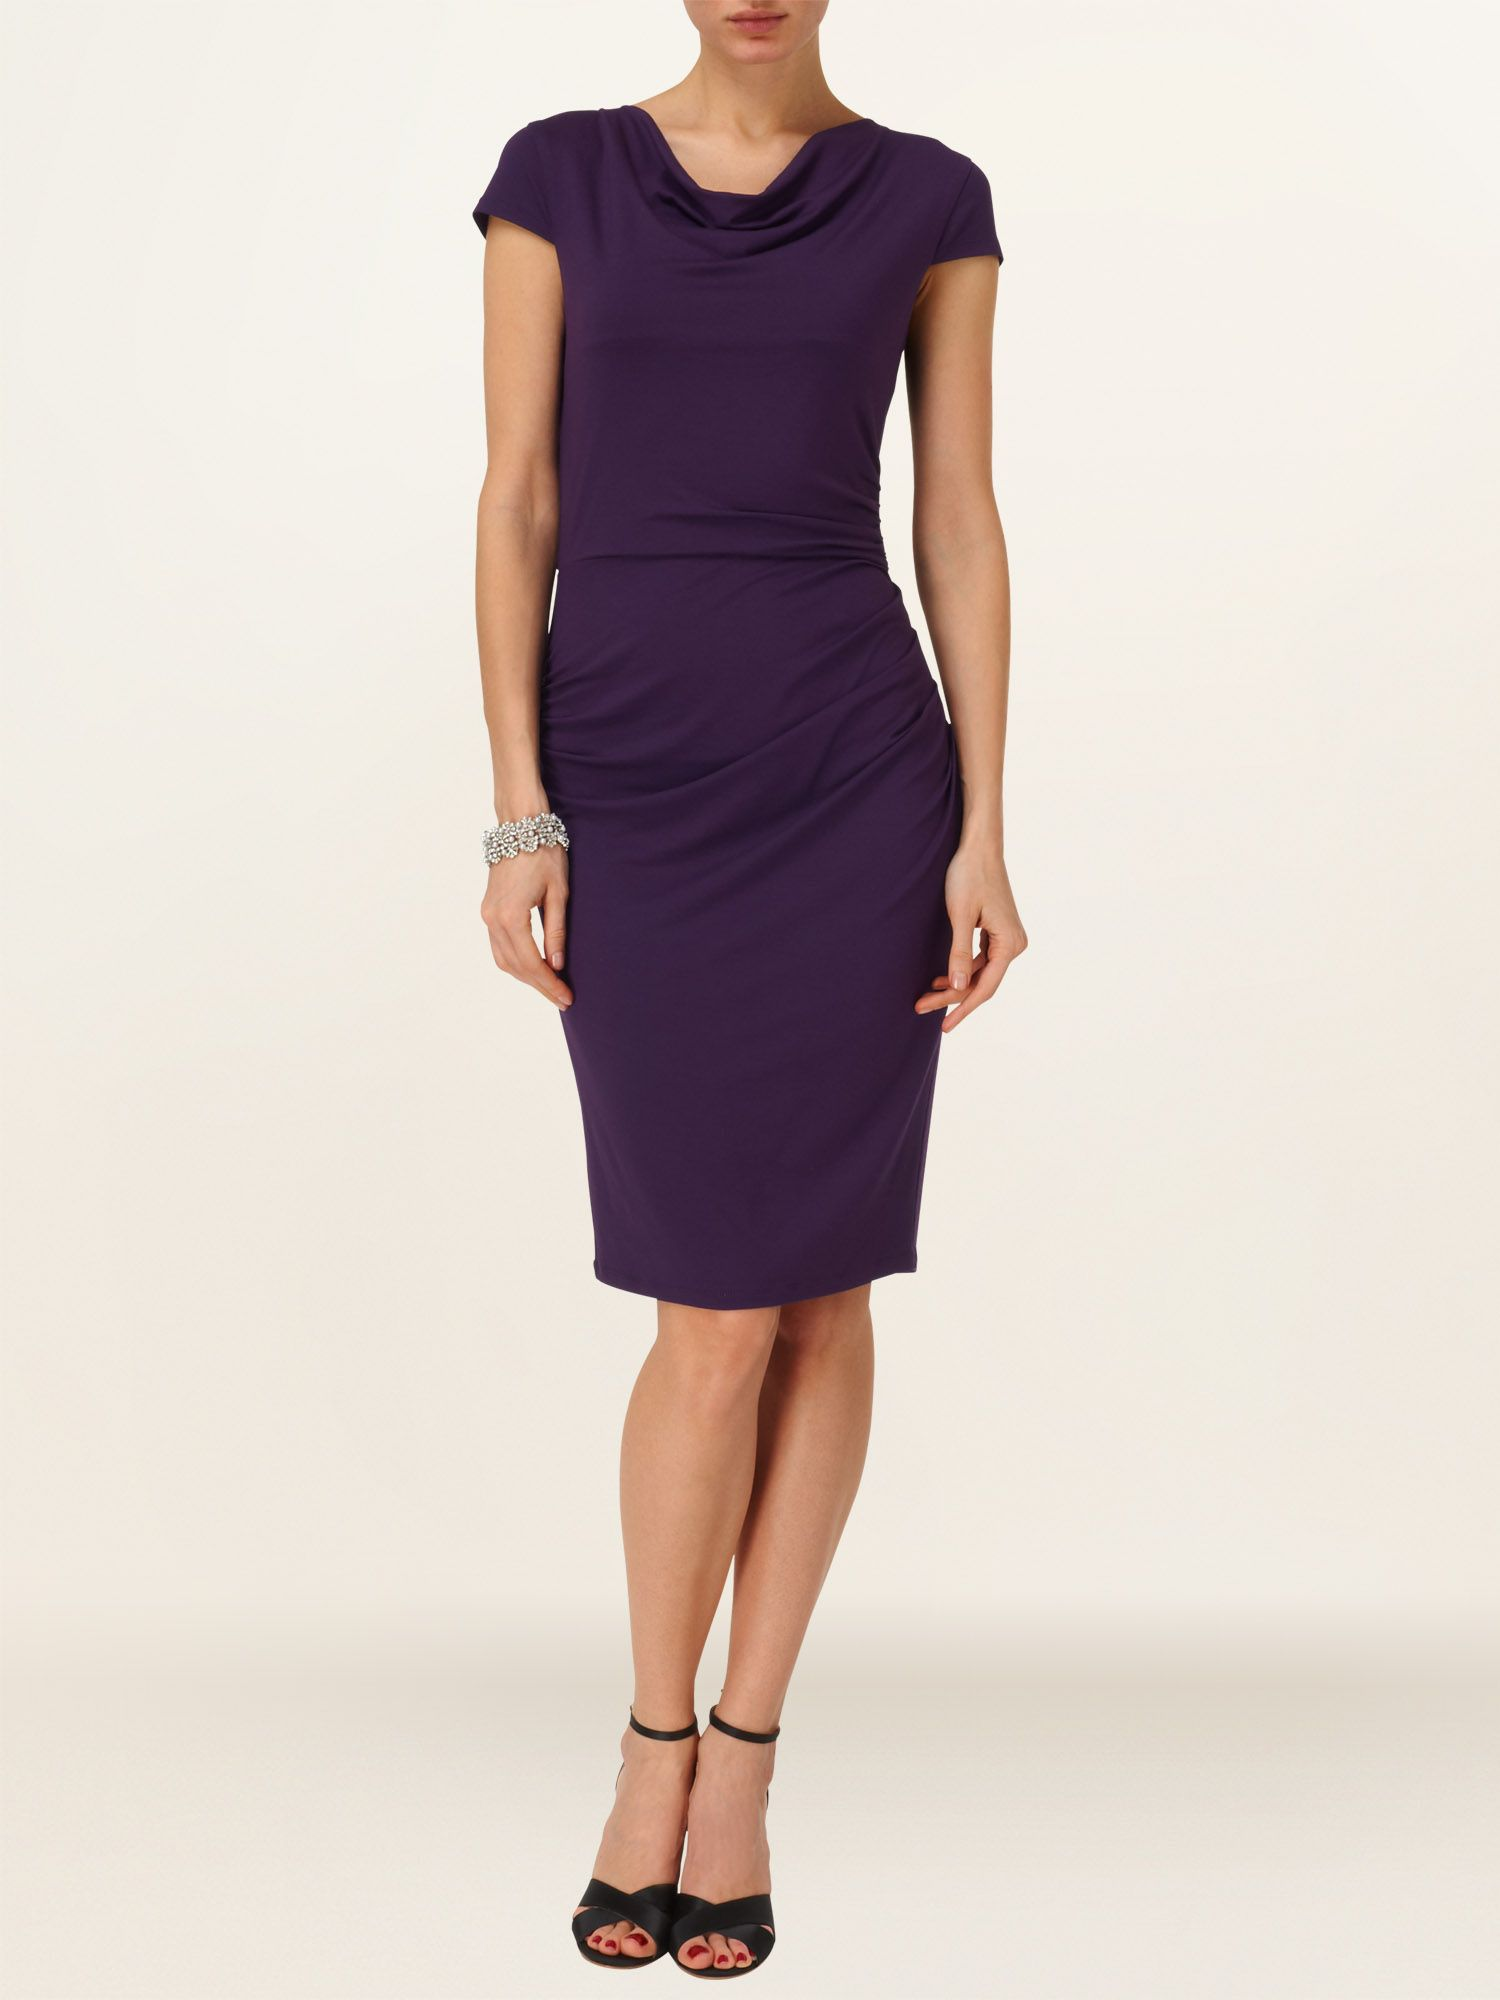 Pamela plain dress